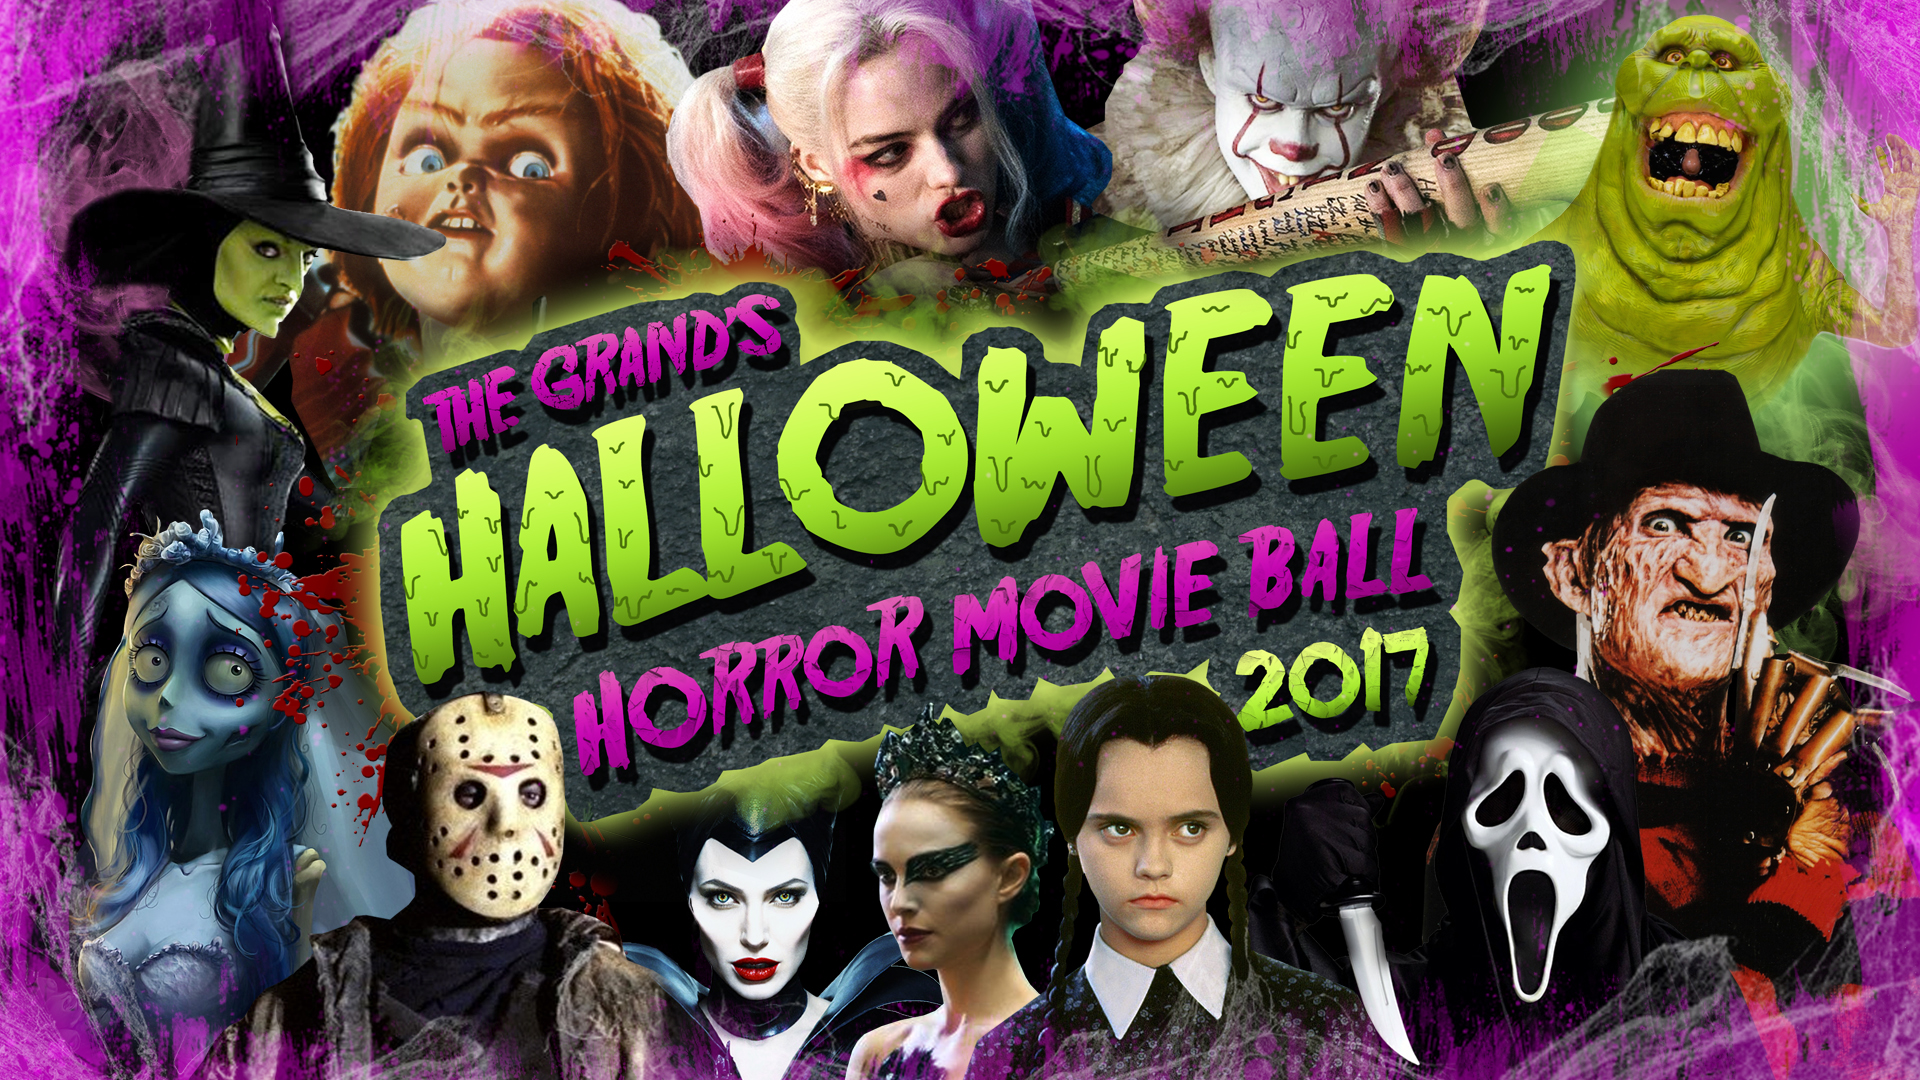 The Grand's Halloween Horror Movie Ball